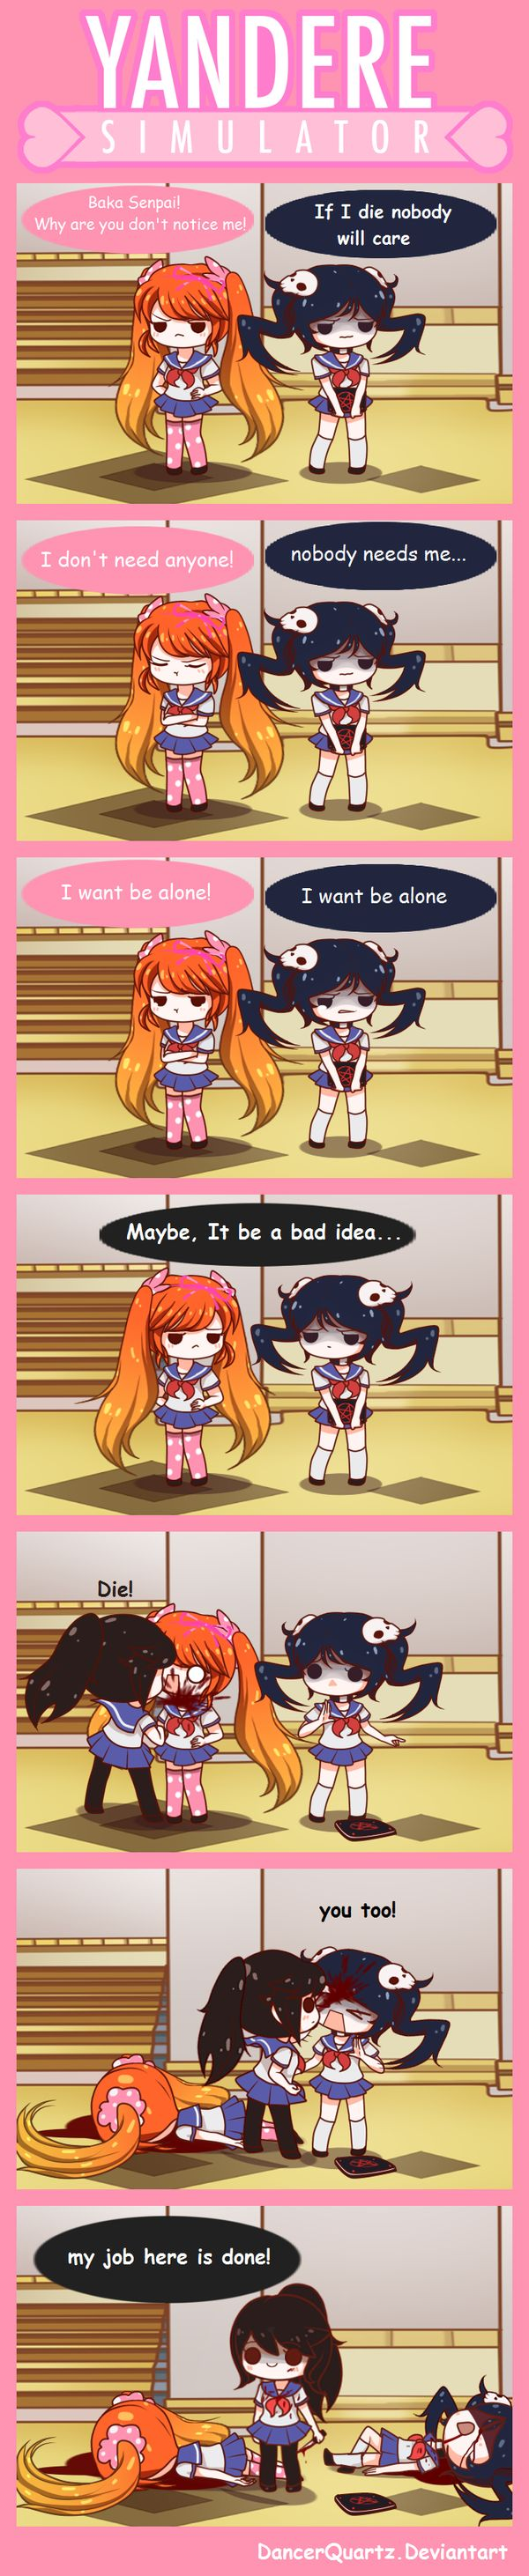 Yandere Comic - solution by DancerQuartz on DeviantArt